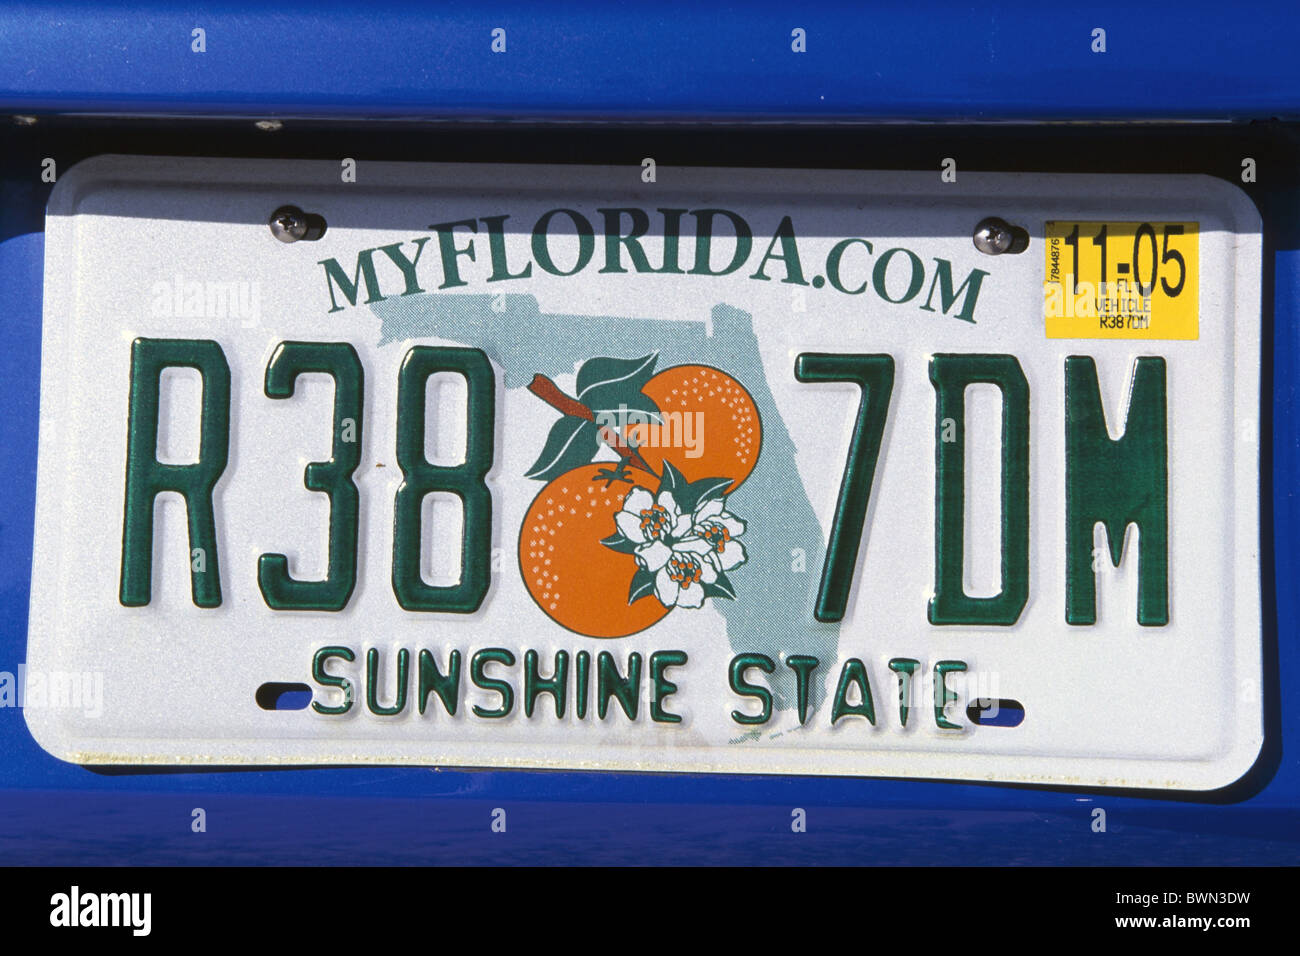 ORLANDO Florida Sunshine State Background Metal Novelty License Plate